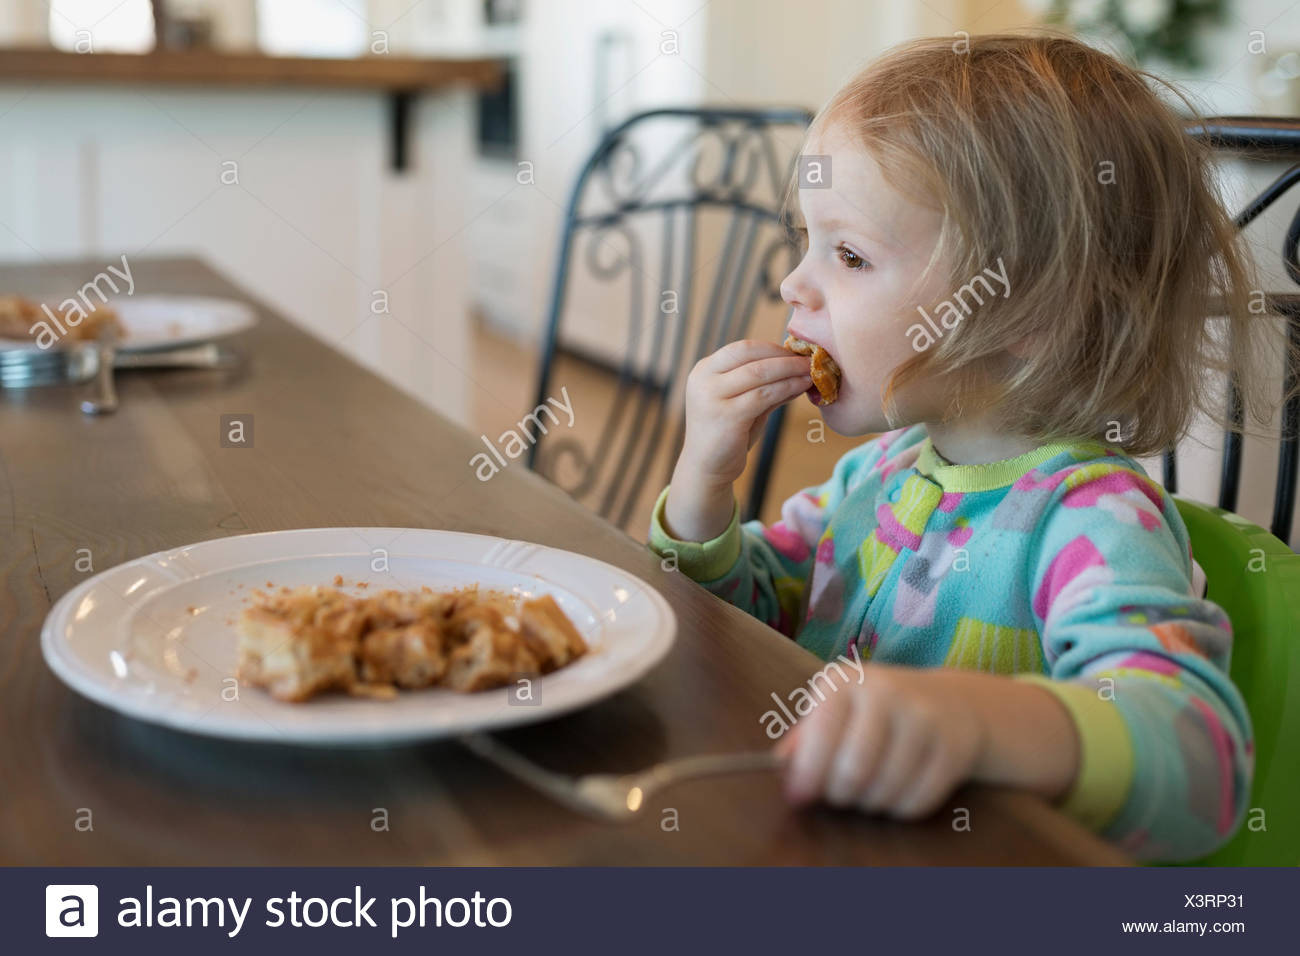 Girl eating waffles at breakfast table - Stock Image